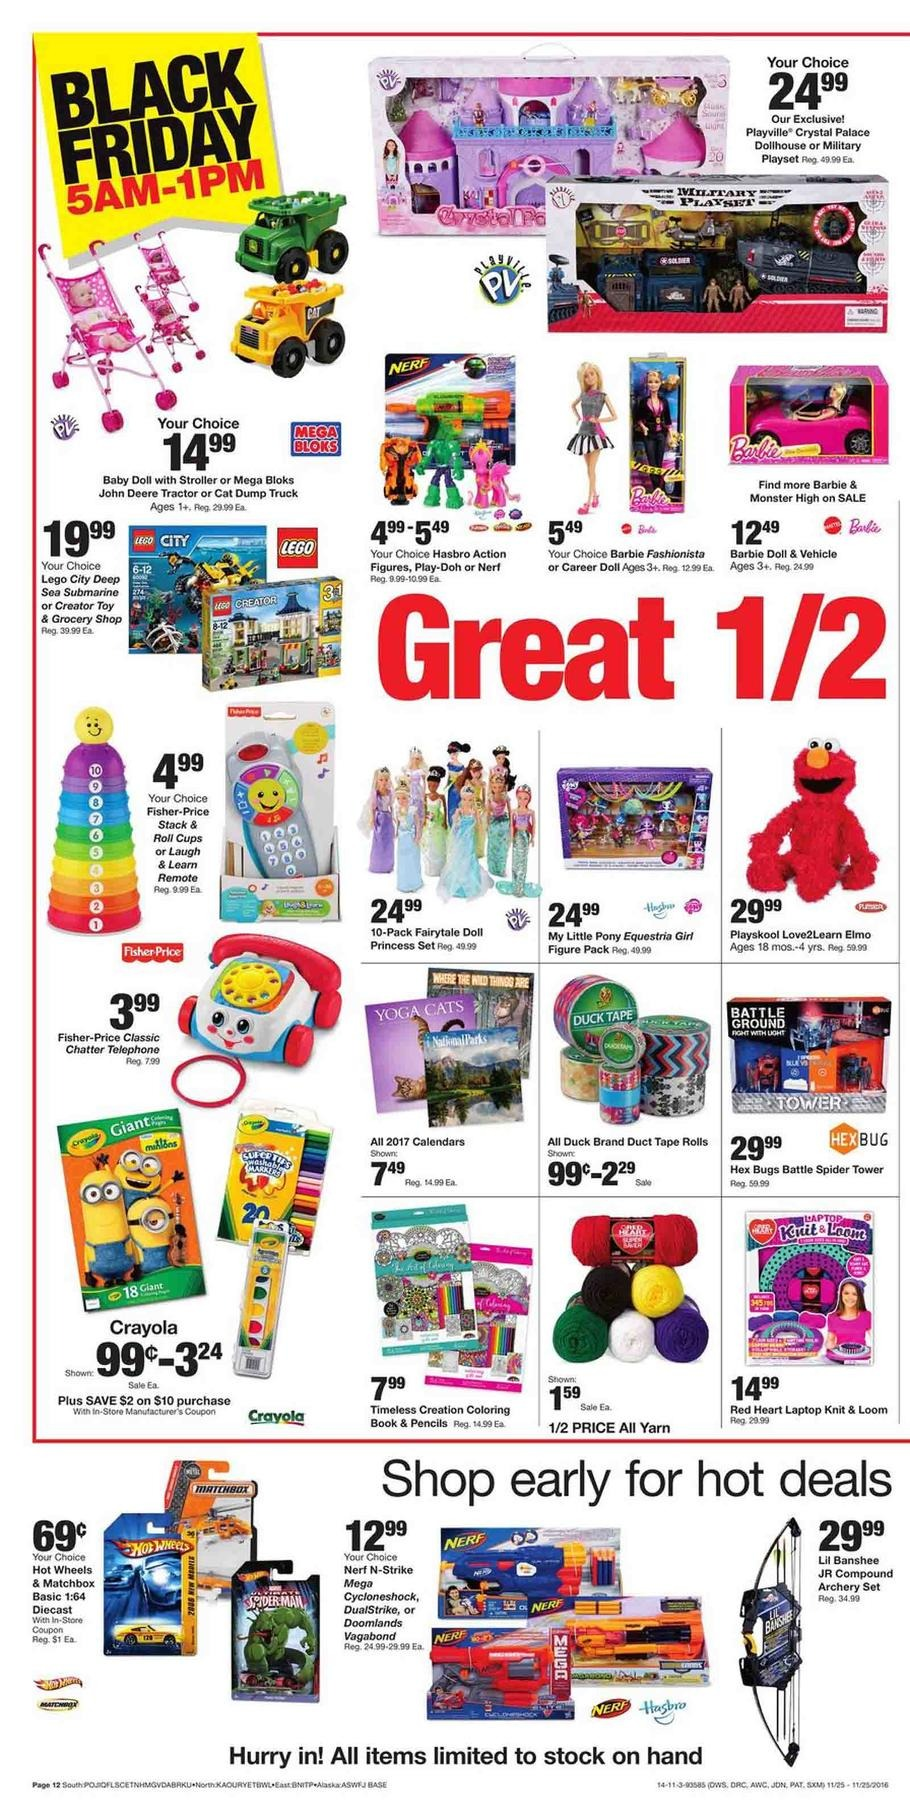 Fred Meyer Black Friday Ads Sales and Deals 2016